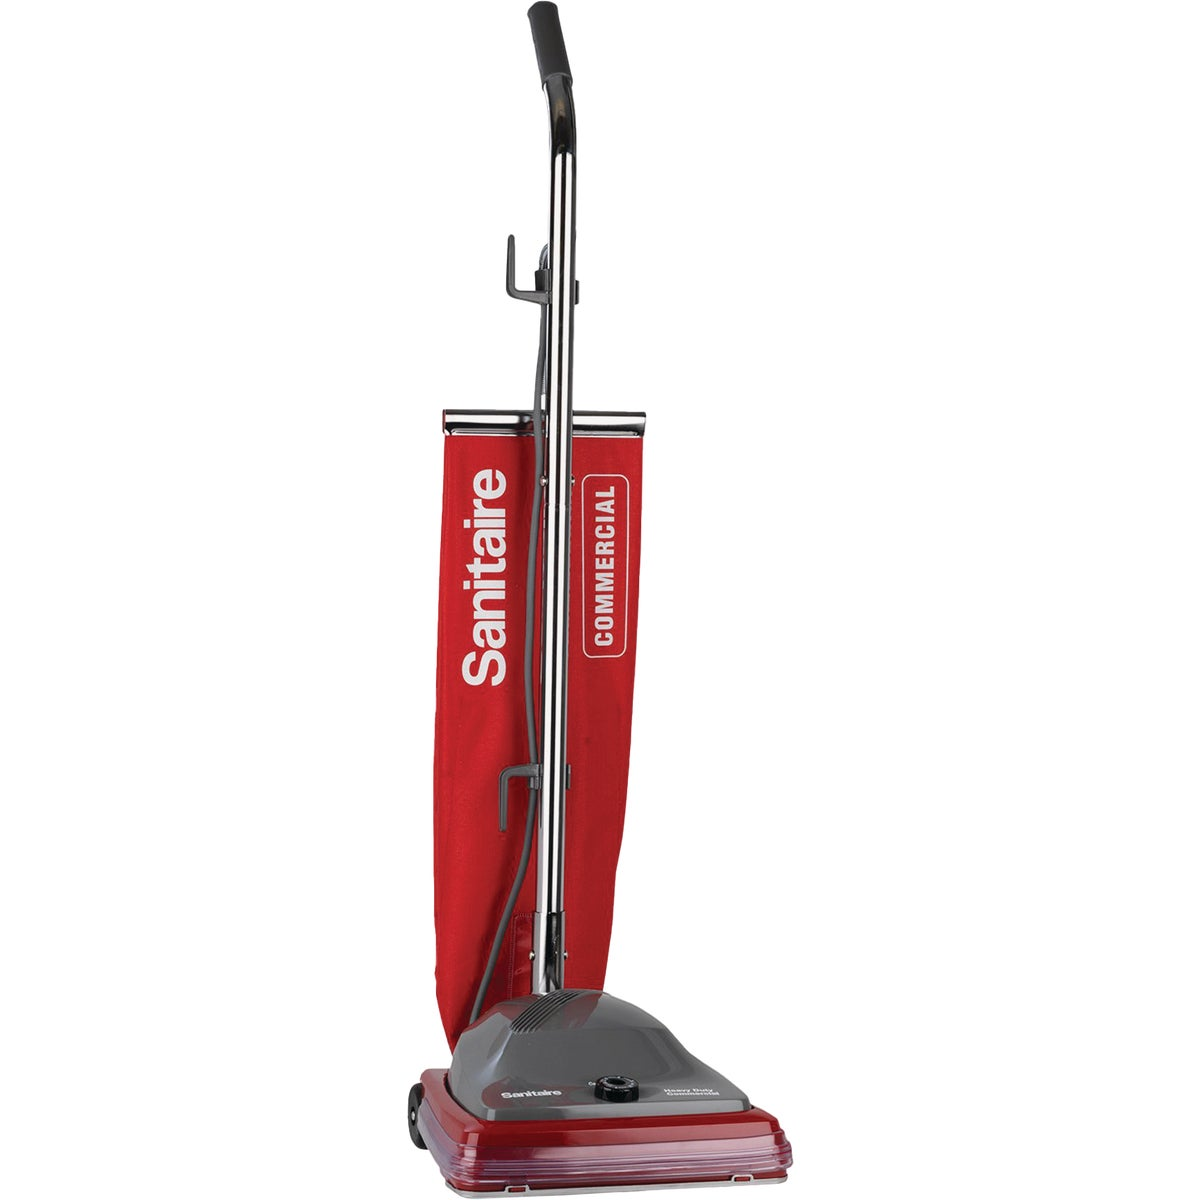 Sanitaire By Electrolux 12 In. Commercial Upright Vacuum Cleaner, SC684F